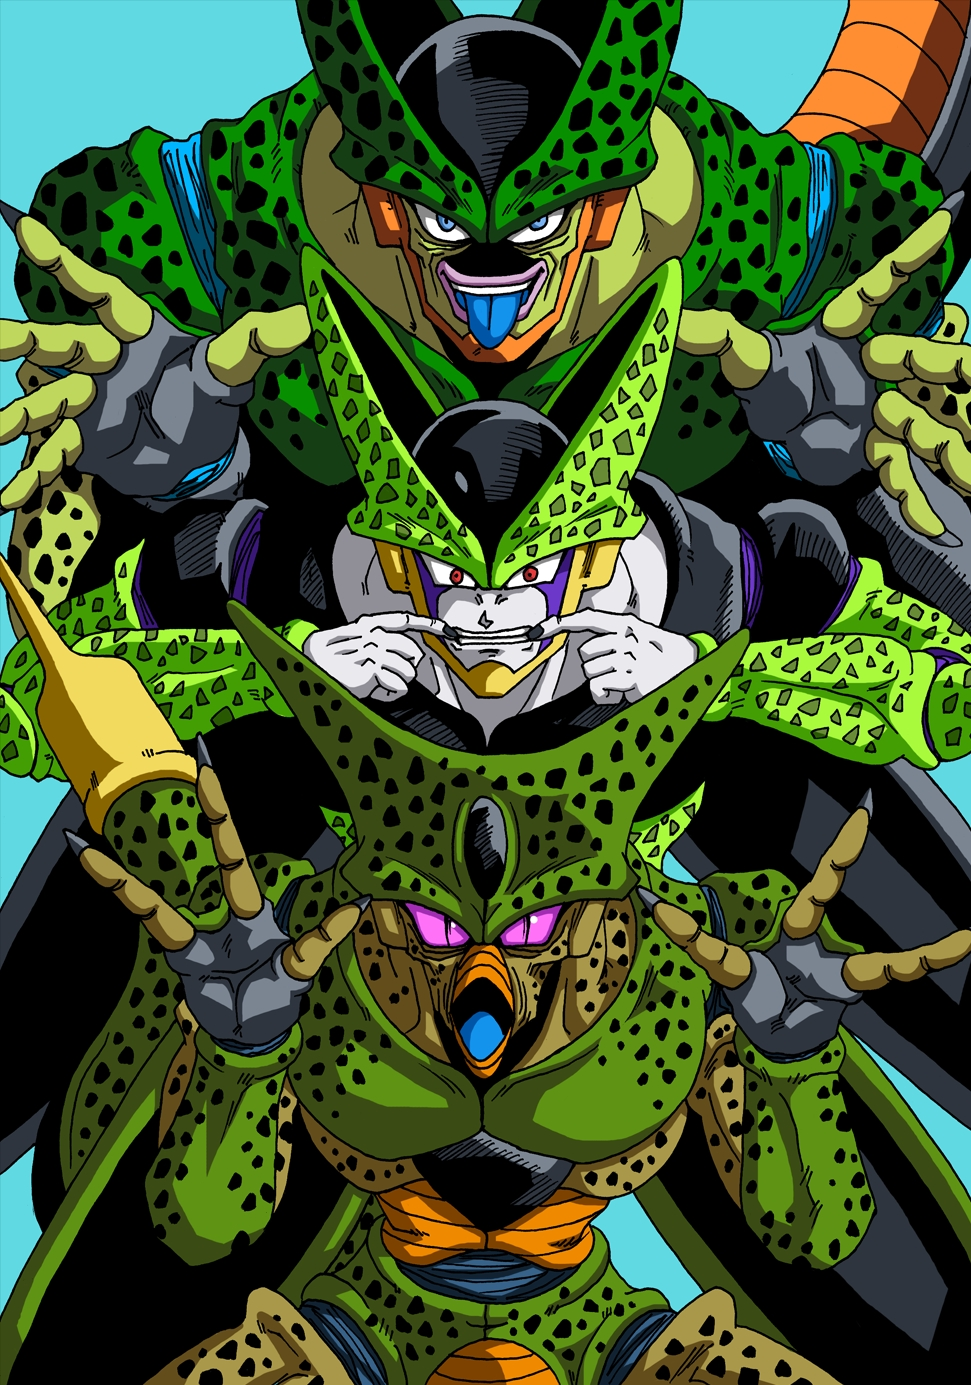 Cell dragon ball dragon ball z zerochan anime image board - Photo dragon ball z ...